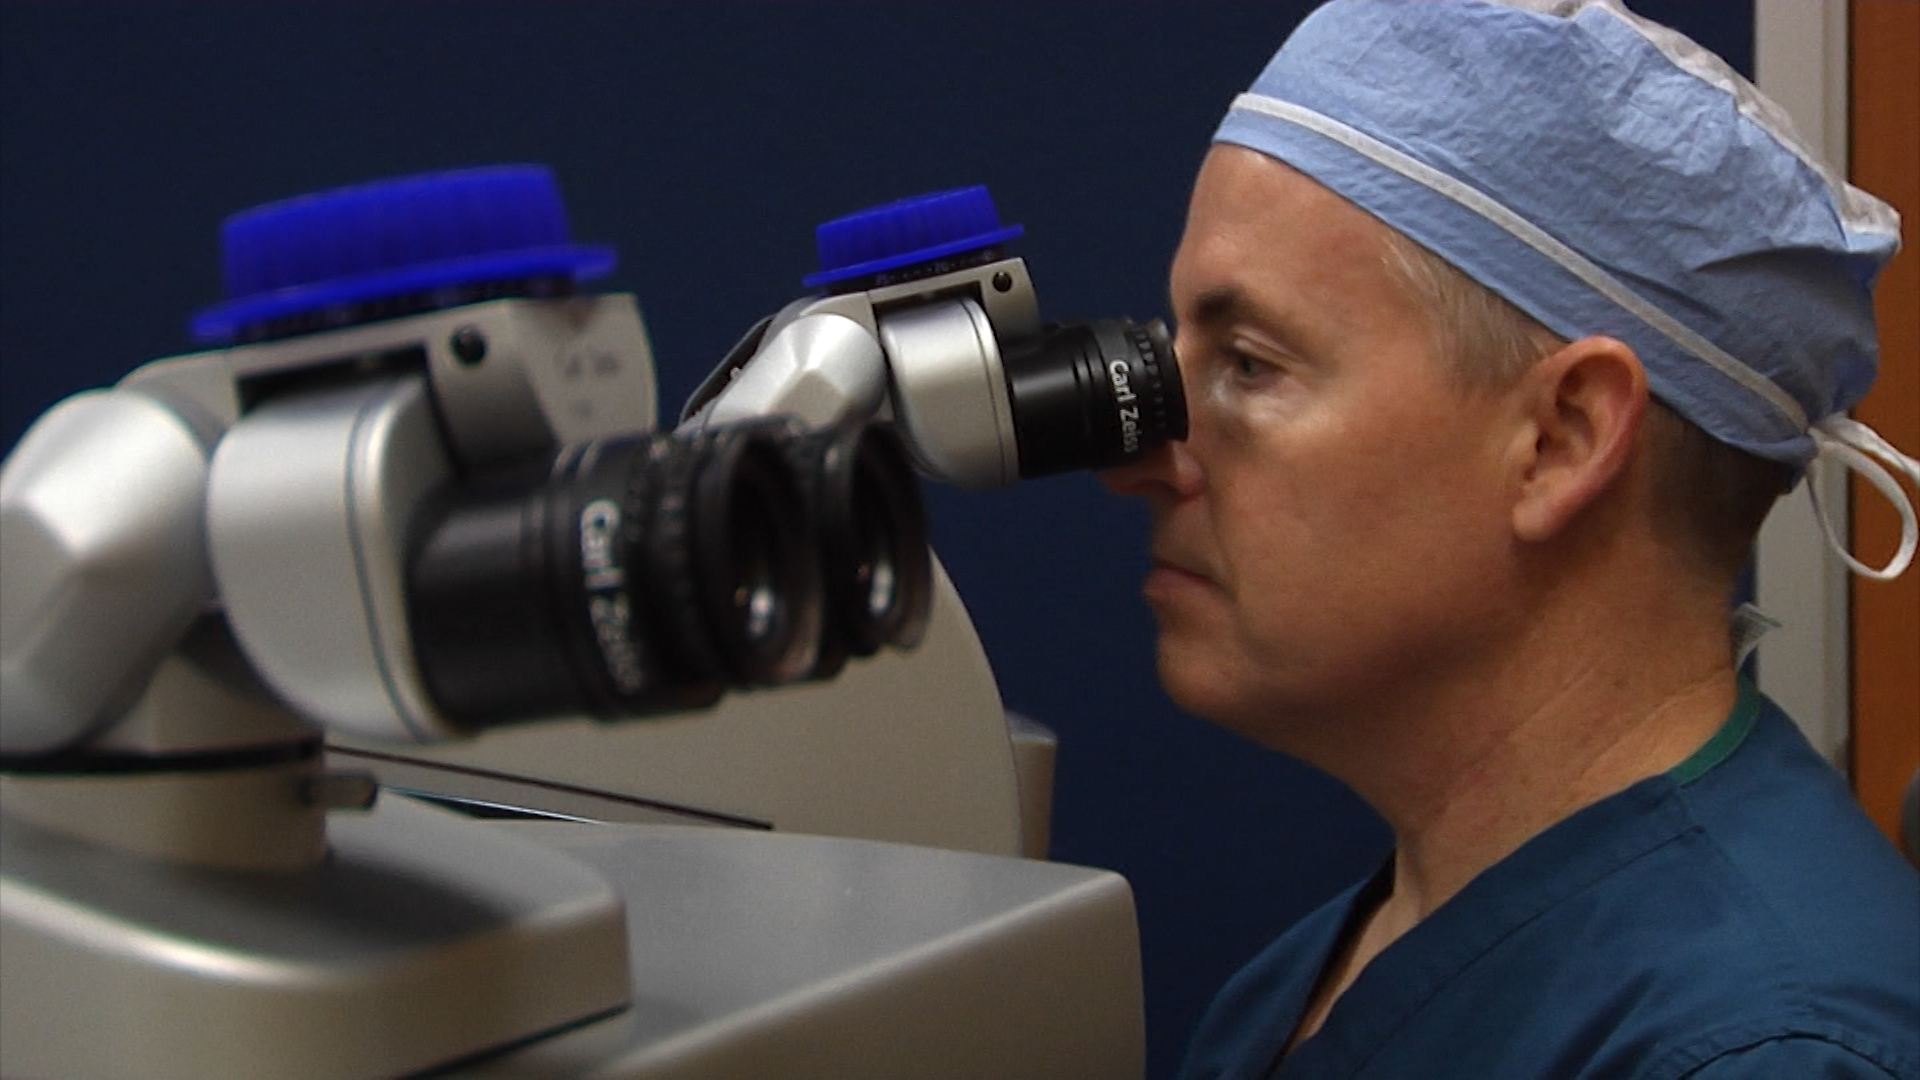 Medwatch Today Lasik Surgery Is Among The Safest Of Surgeries Yourcentralvalley Com